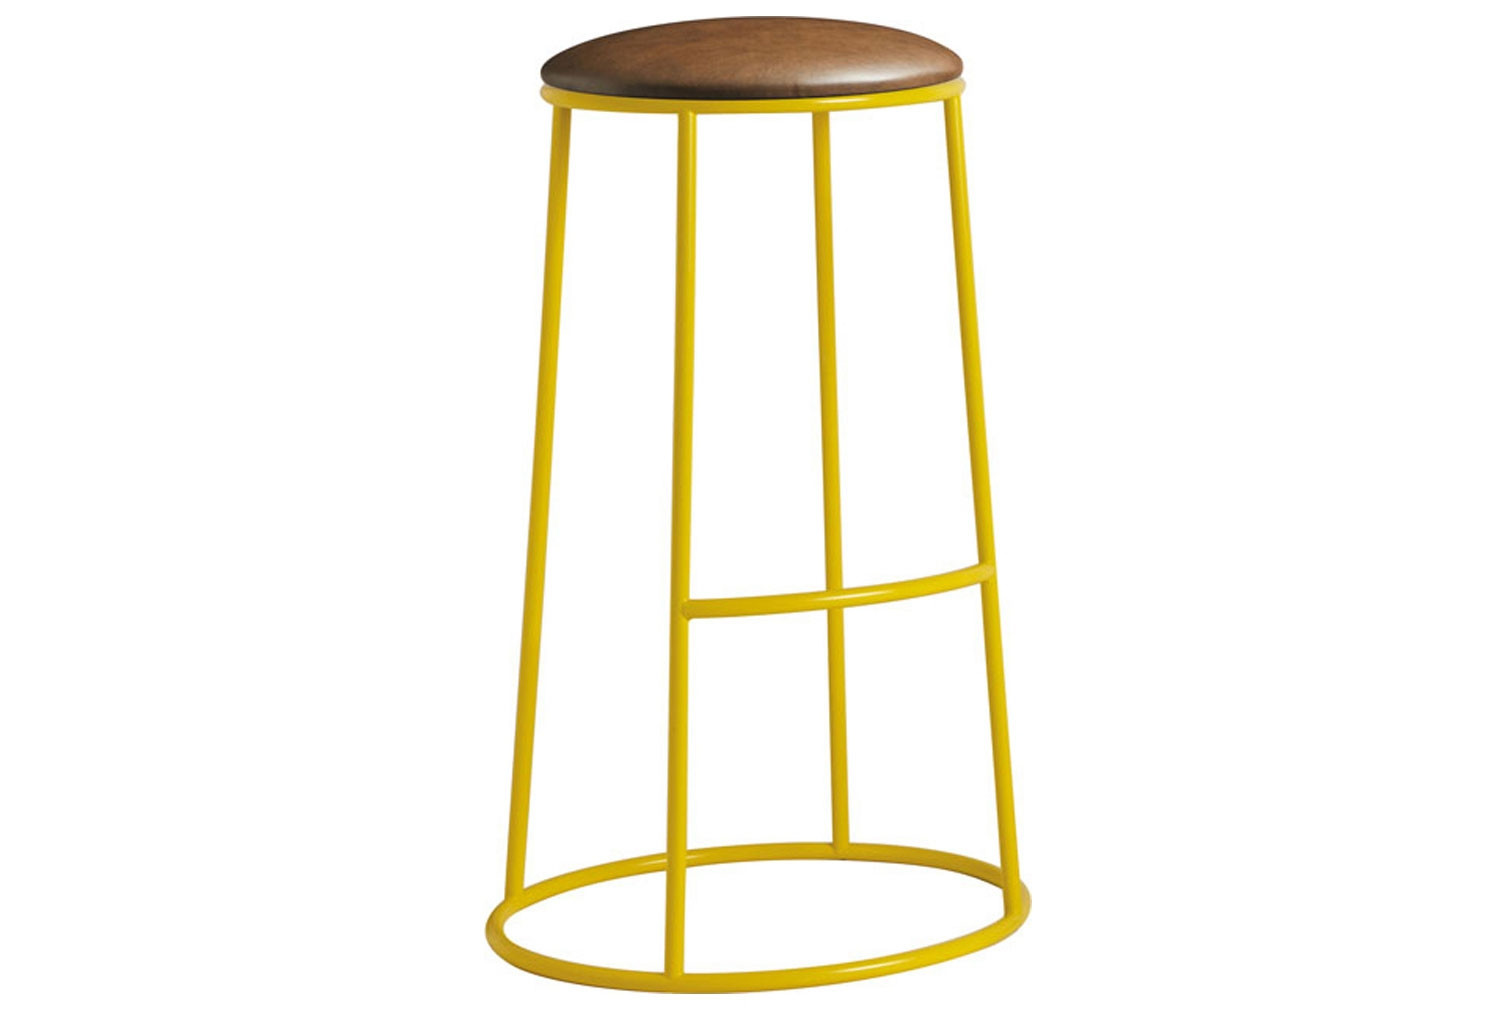 Mulluna High Stool With Upholstered Seat